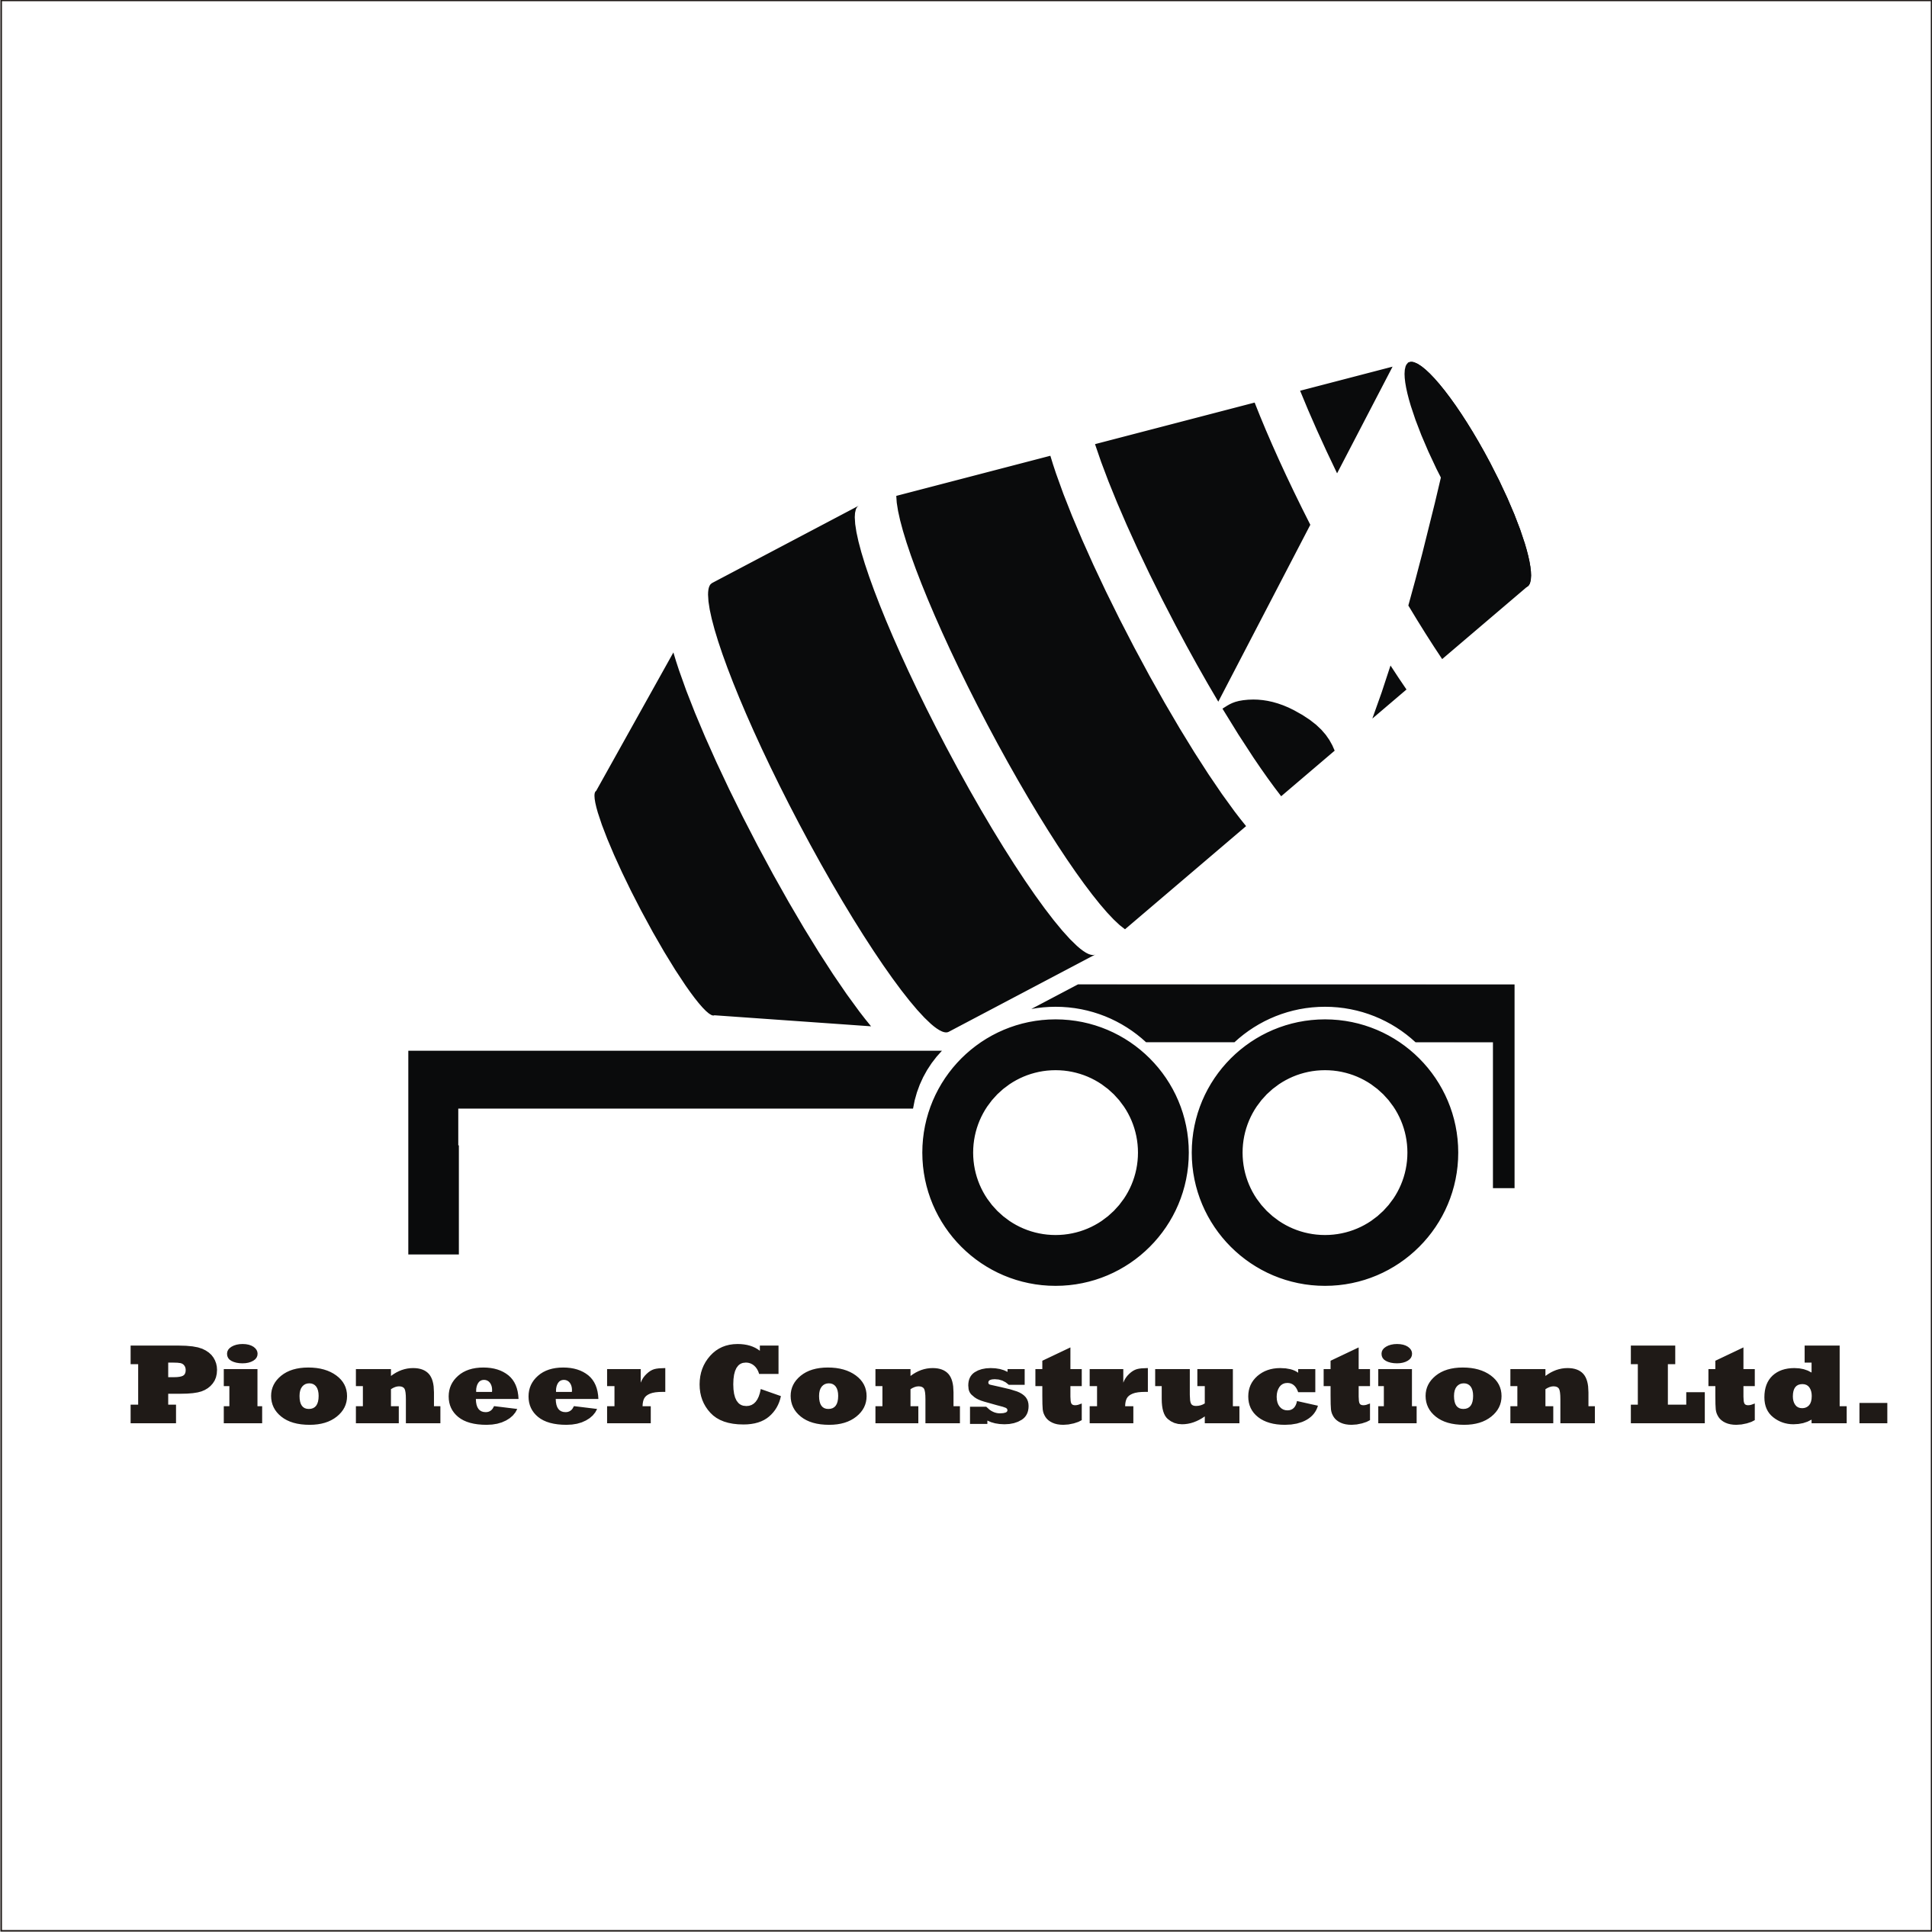 Logo Design by Private User - Entry No. 26 in the Logo Design Contest Imaginative Logo Design for  Pioneer Construction Ltd.